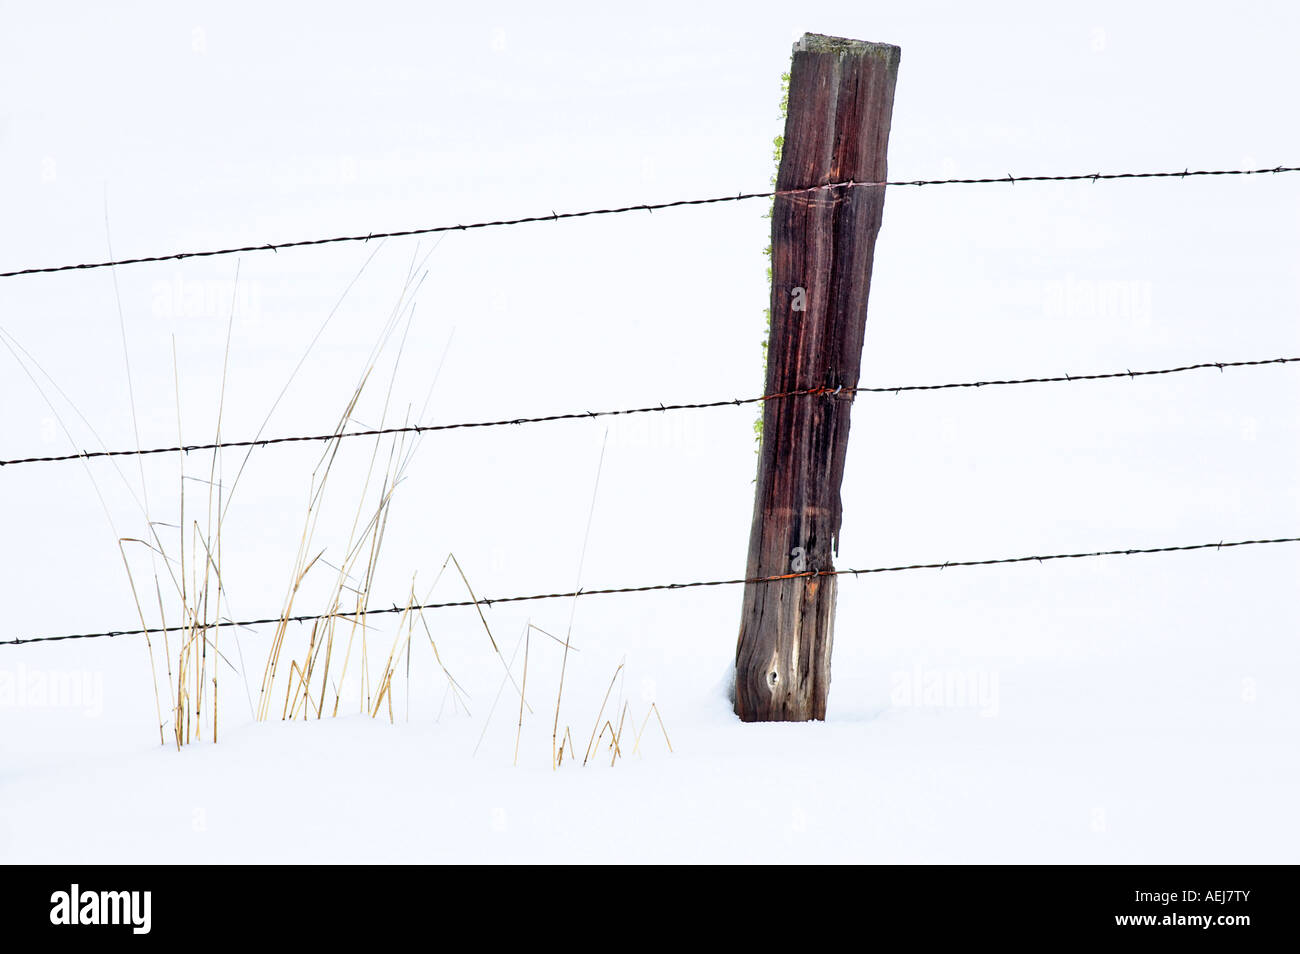 Barbed wire fence in snow with grass Elkhorn Scenic Byway Oregon - Stock Image